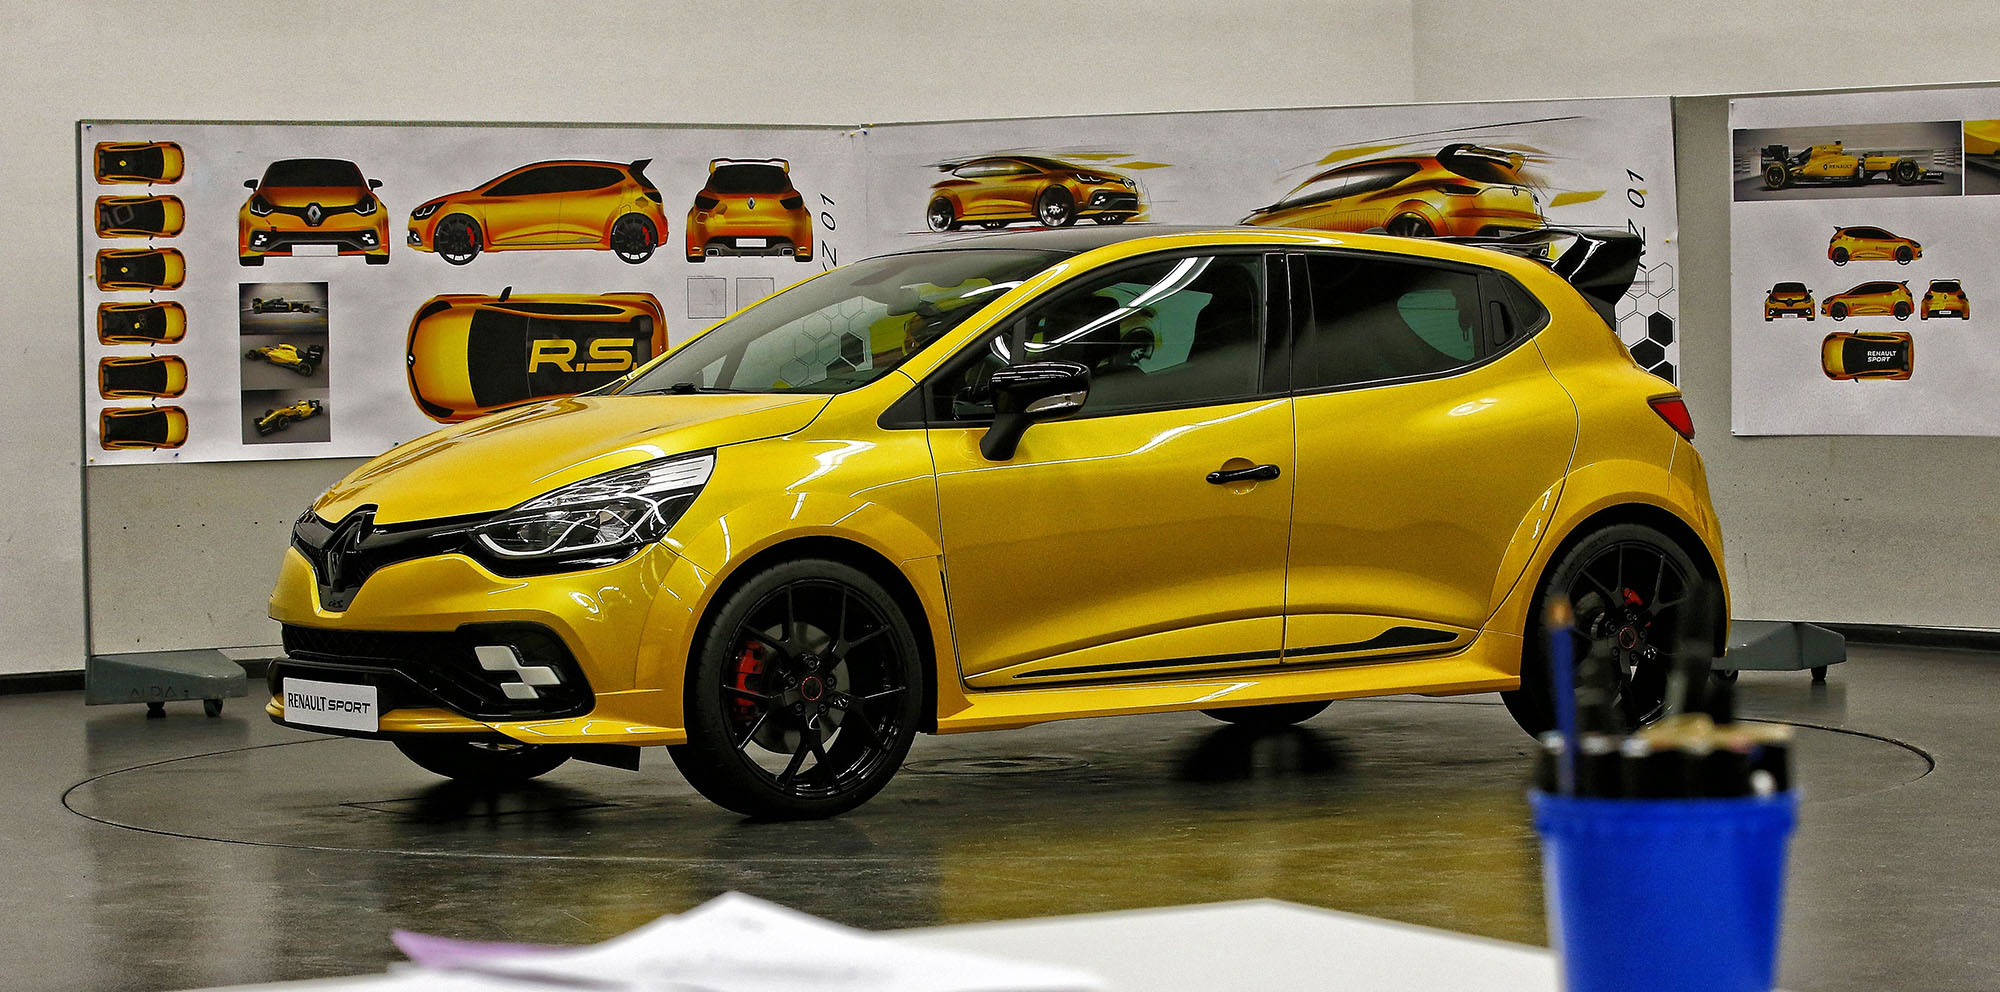 renault clio rs 16 concept unveiled with megane rs power video photos caradvice. Black Bedroom Furniture Sets. Home Design Ideas